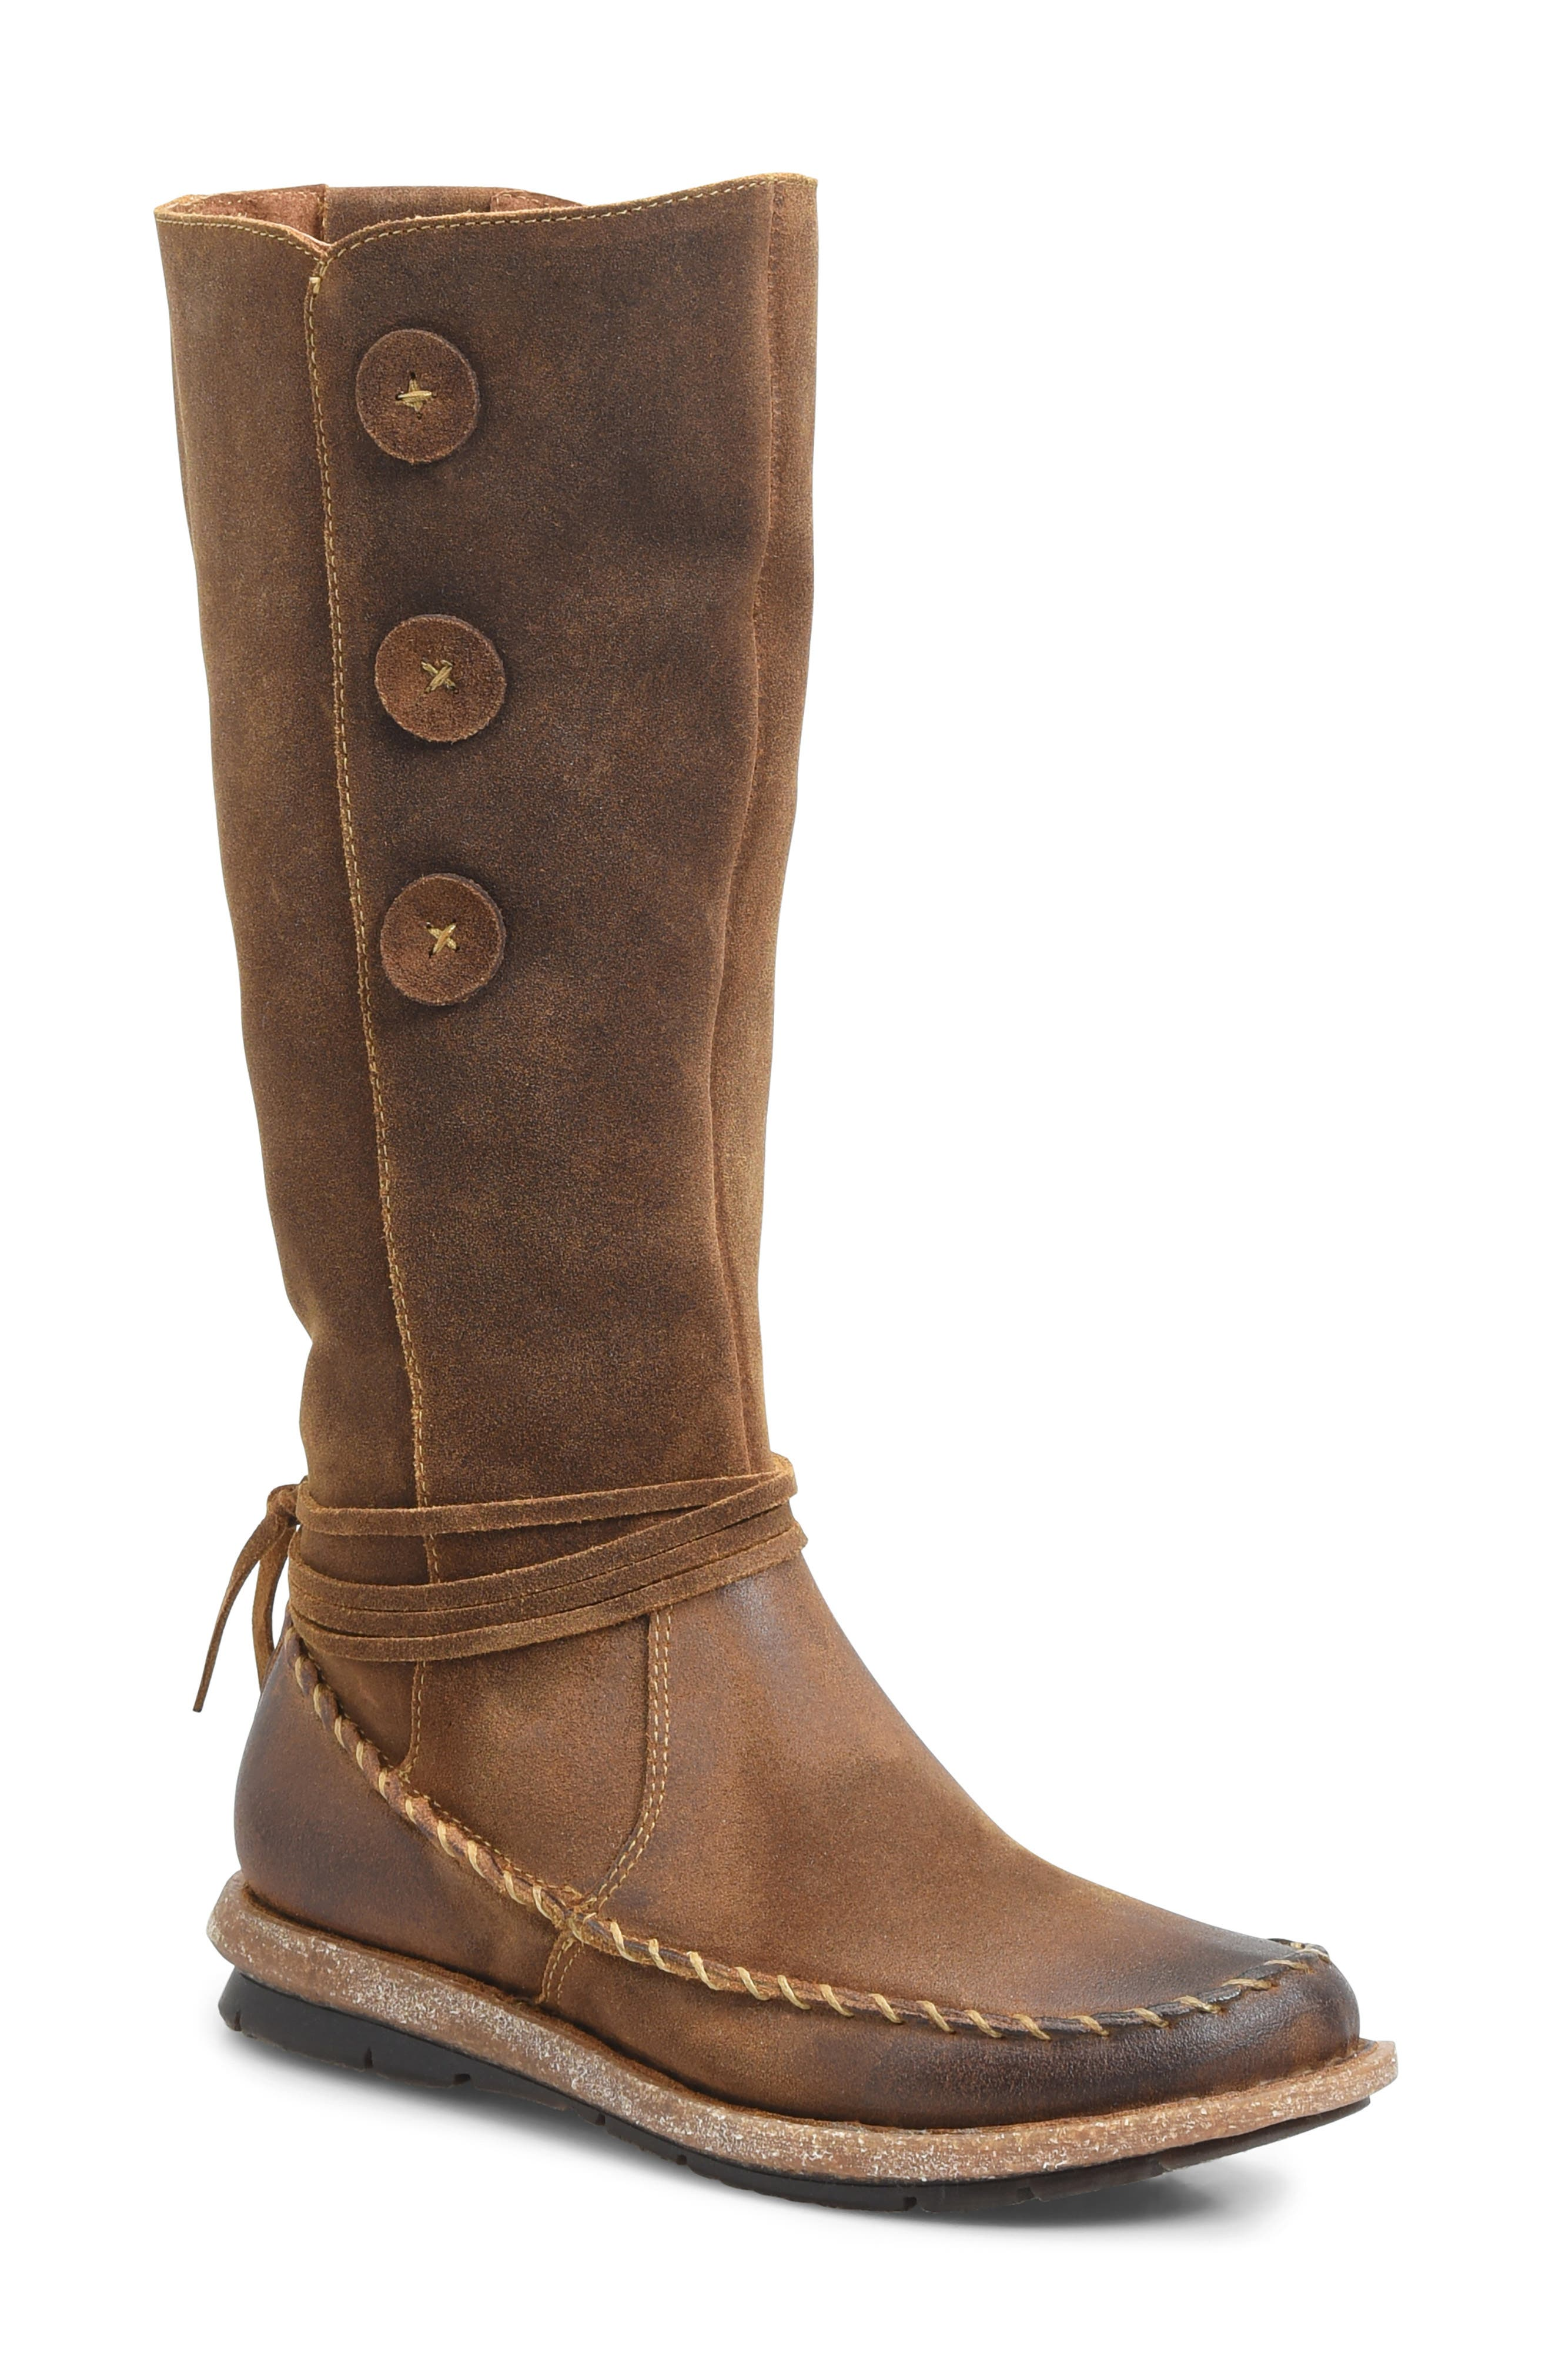 Torrey Boot,                             Main thumbnail 1, color,                             RUST DISTRESSED LEATHER